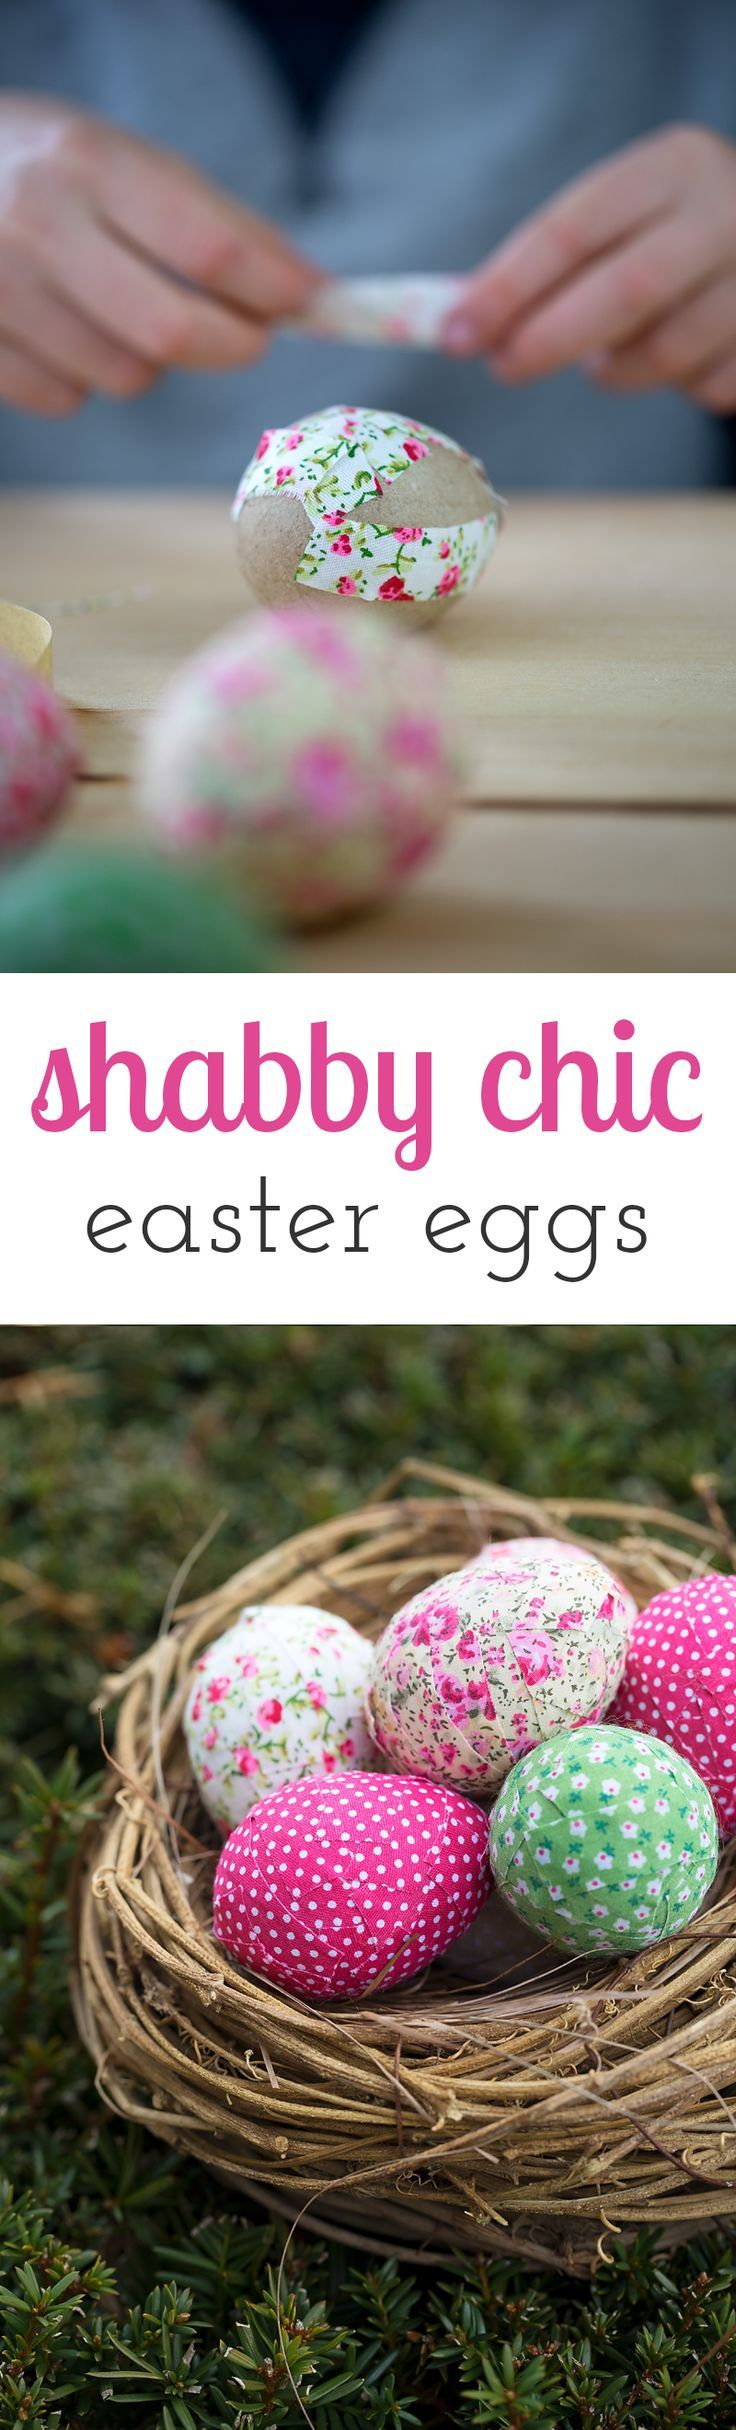 How to Make Super Simple Shabby Chic